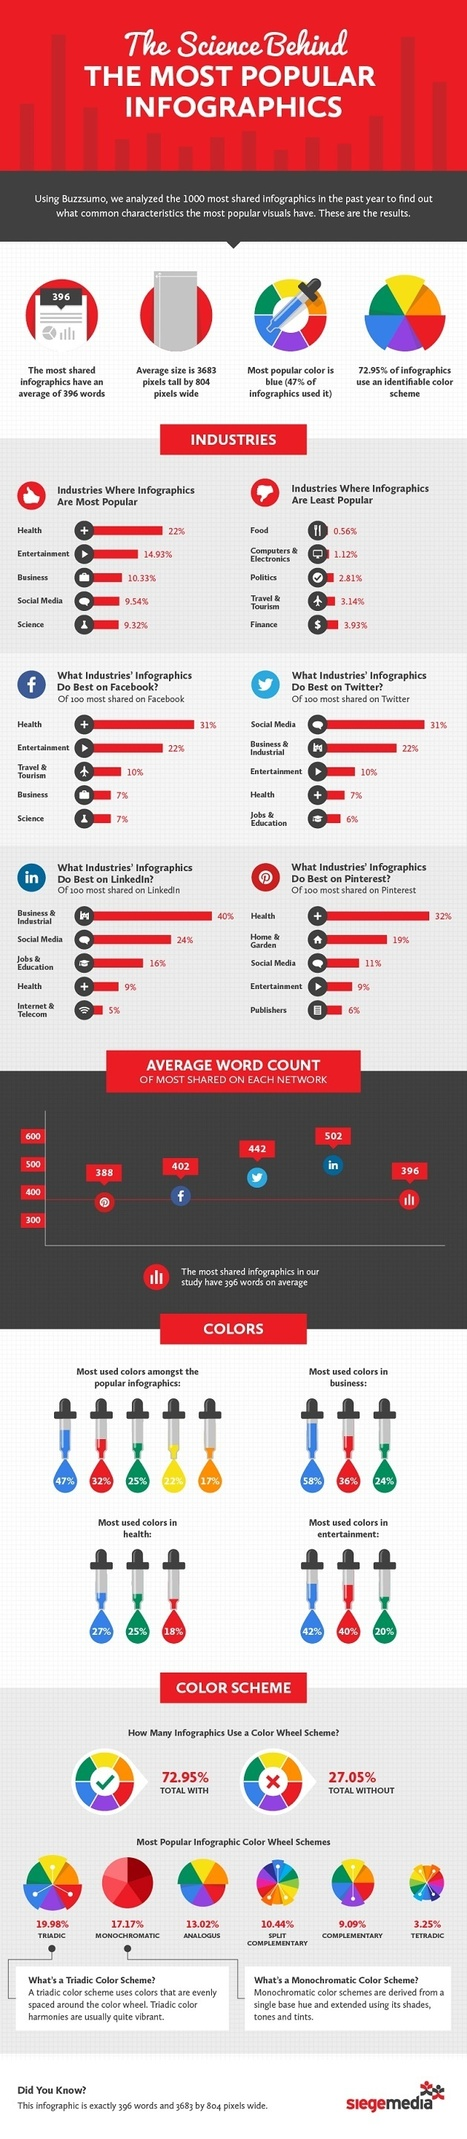 The Science Behind the Most Popular Infographics #Infographic | MarketingHits | Scoop.it